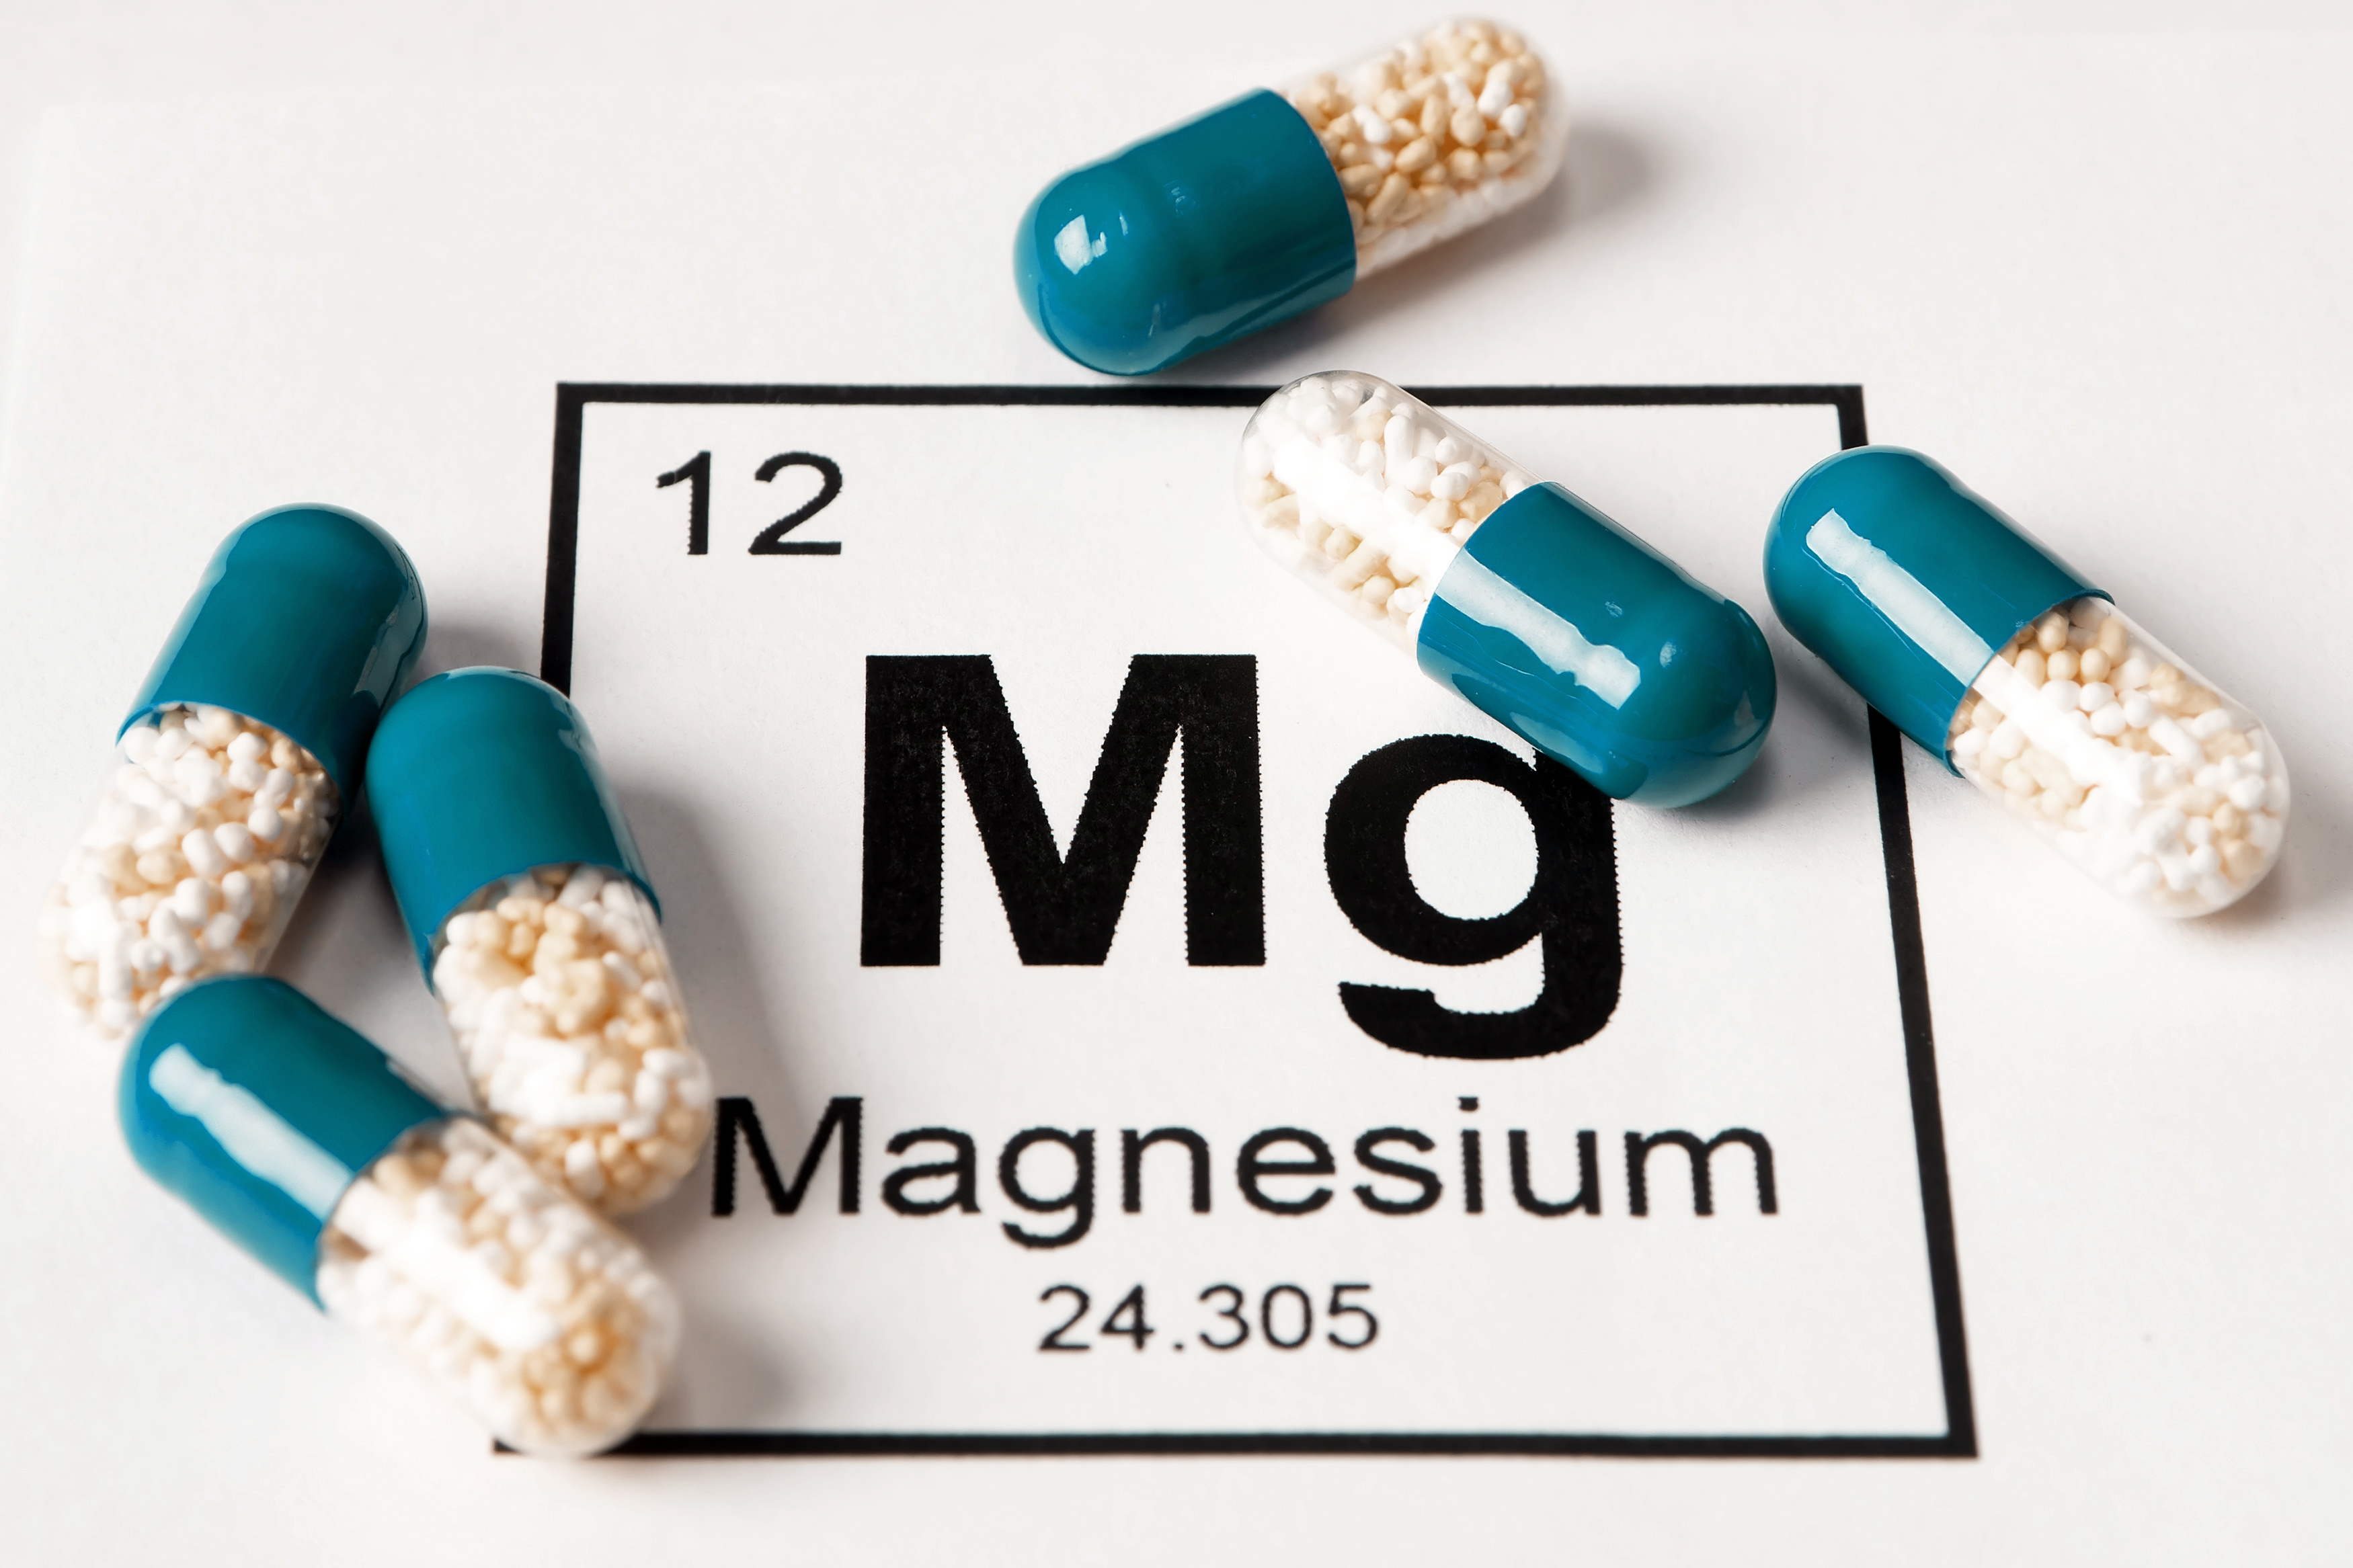 What Does Magnesium Actually Do For You?